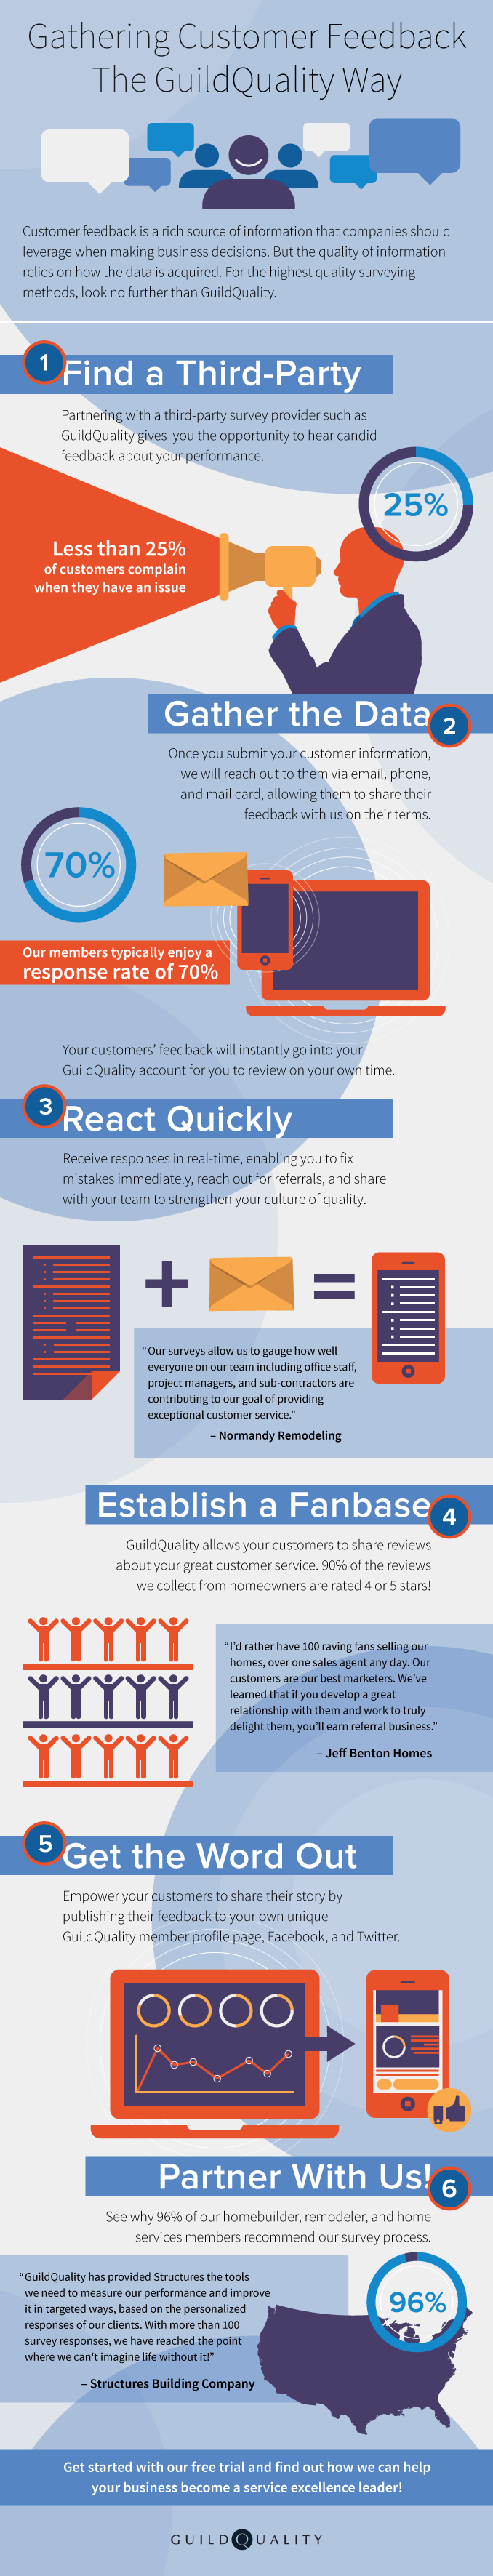 Gathering Customer Feedback - GuildQuality Infographic